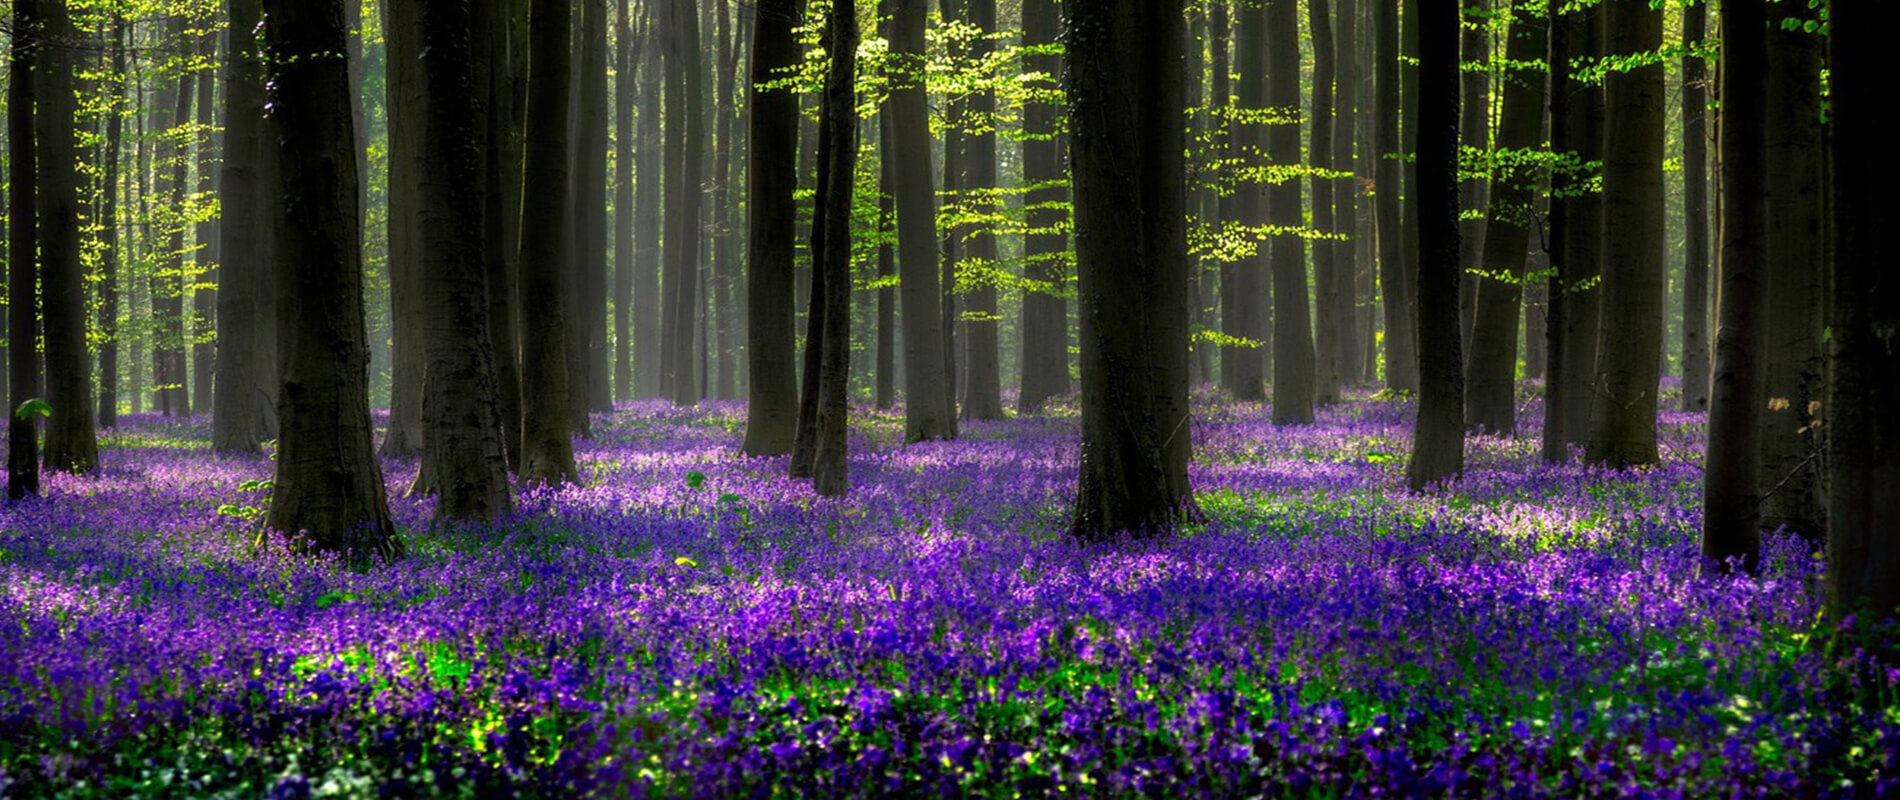 Hallerbos, the Enchanted Forest that Turns Blue